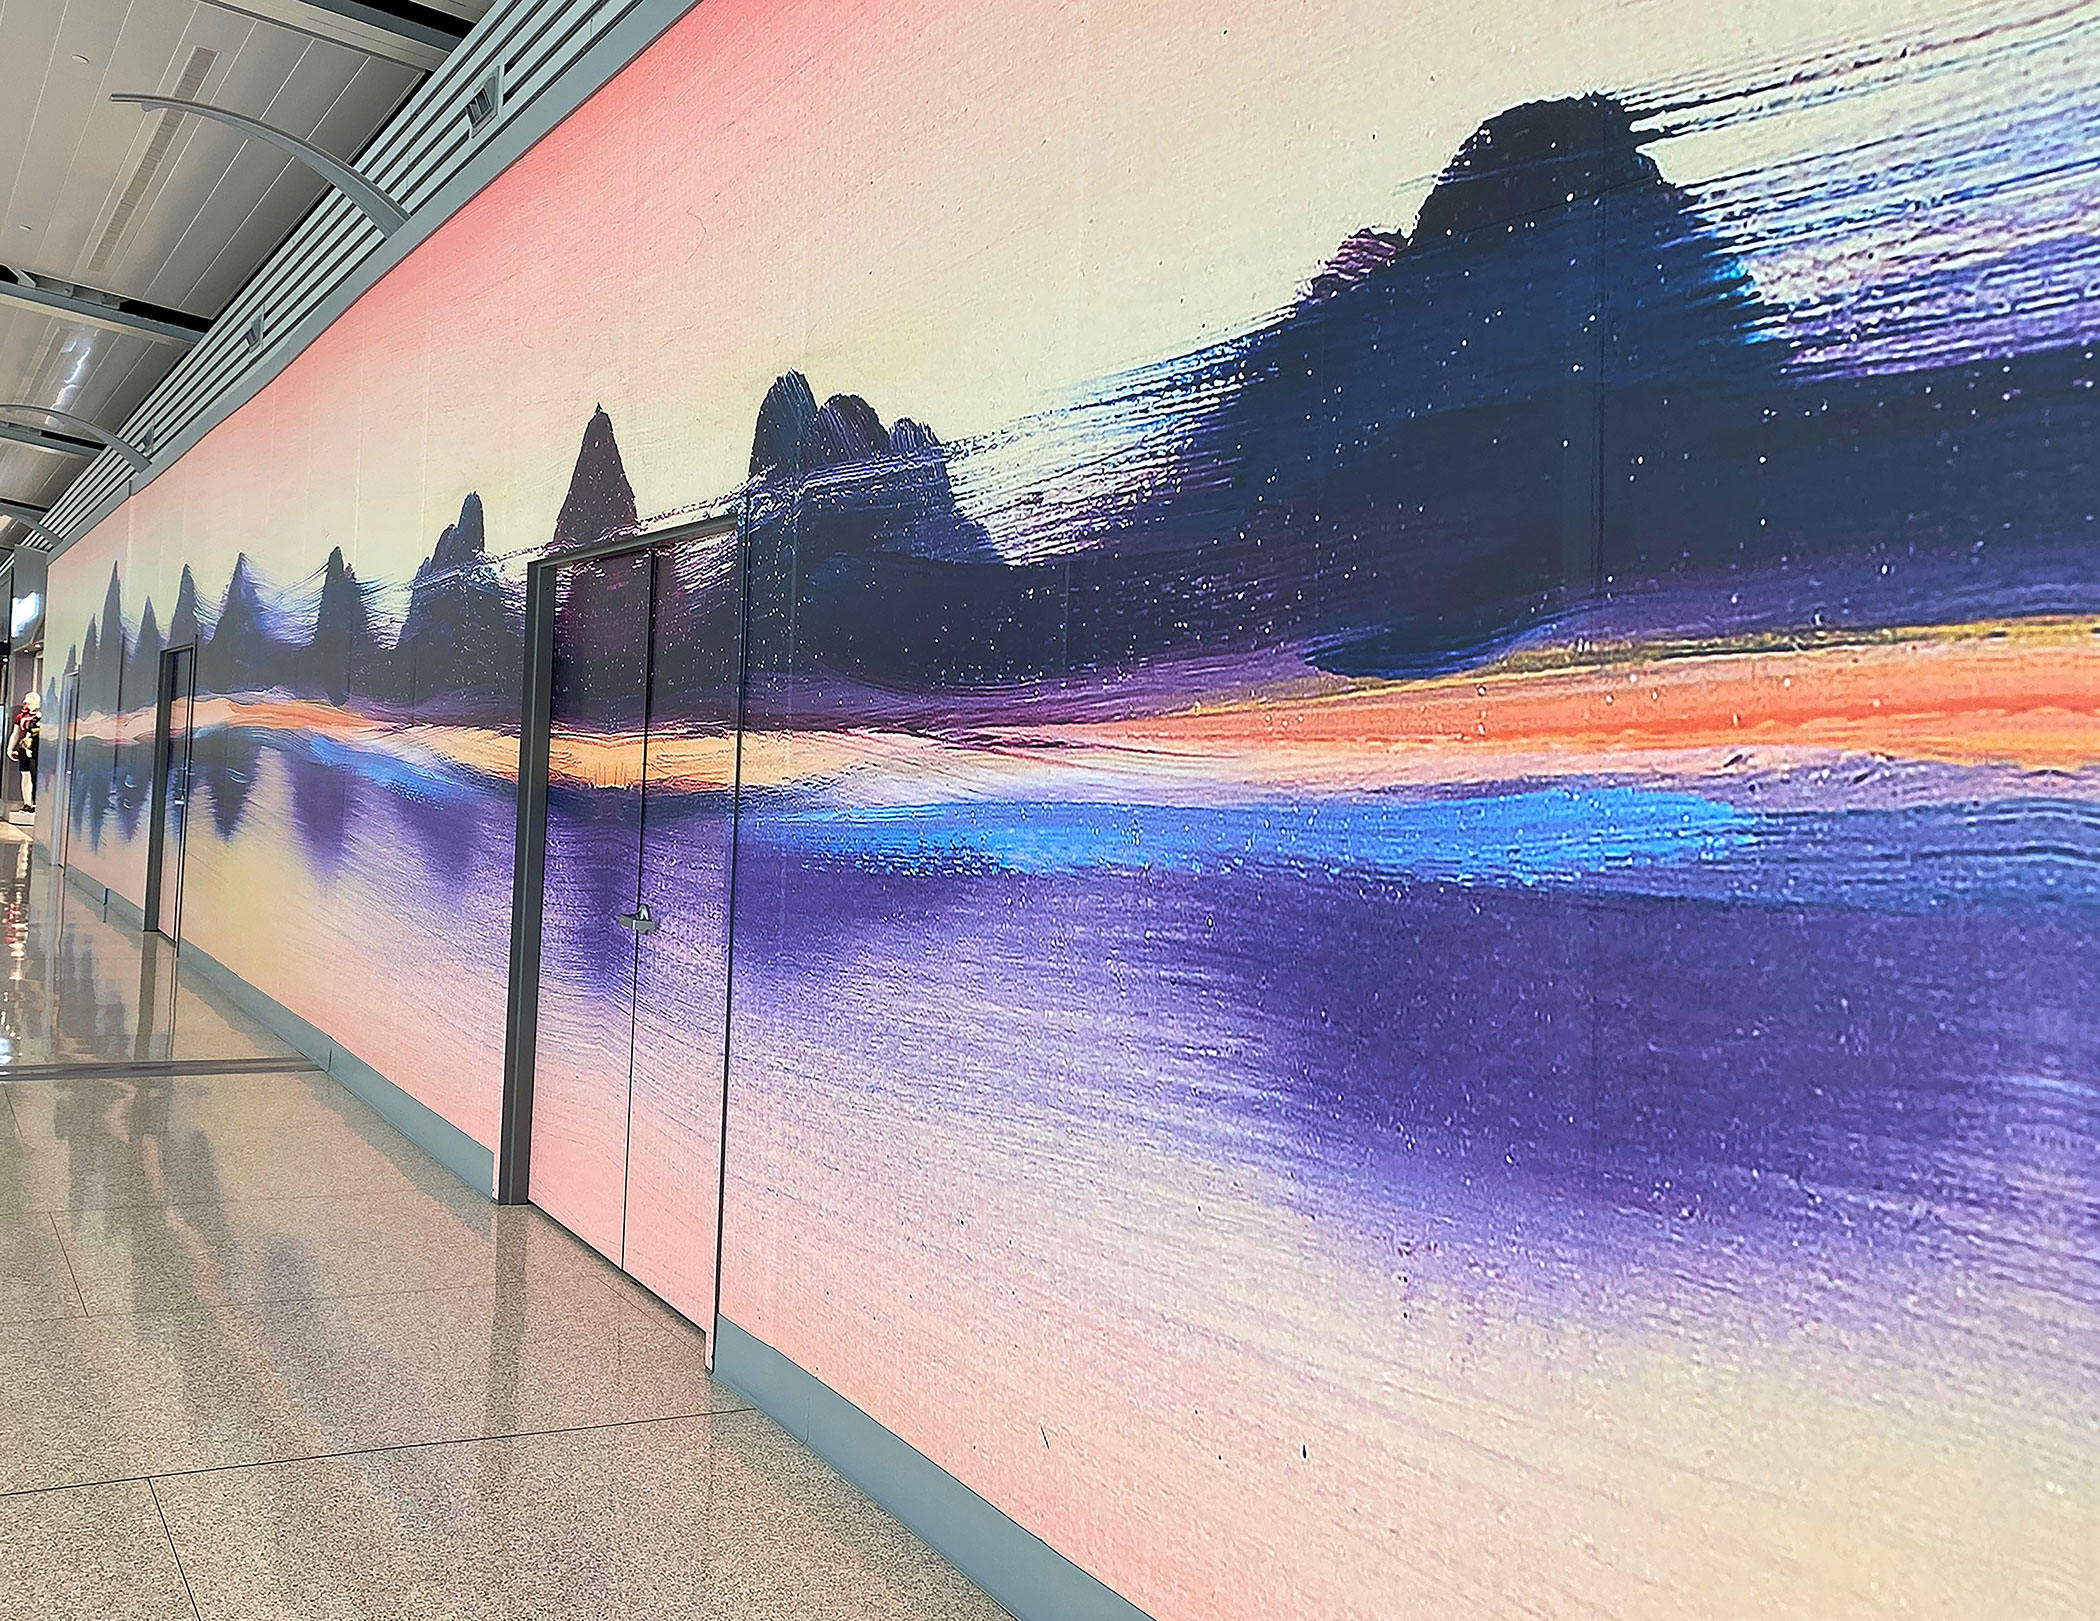 Indianapolis-area artist Morgan Jefferson designed this mural printed by Repro Graphix.